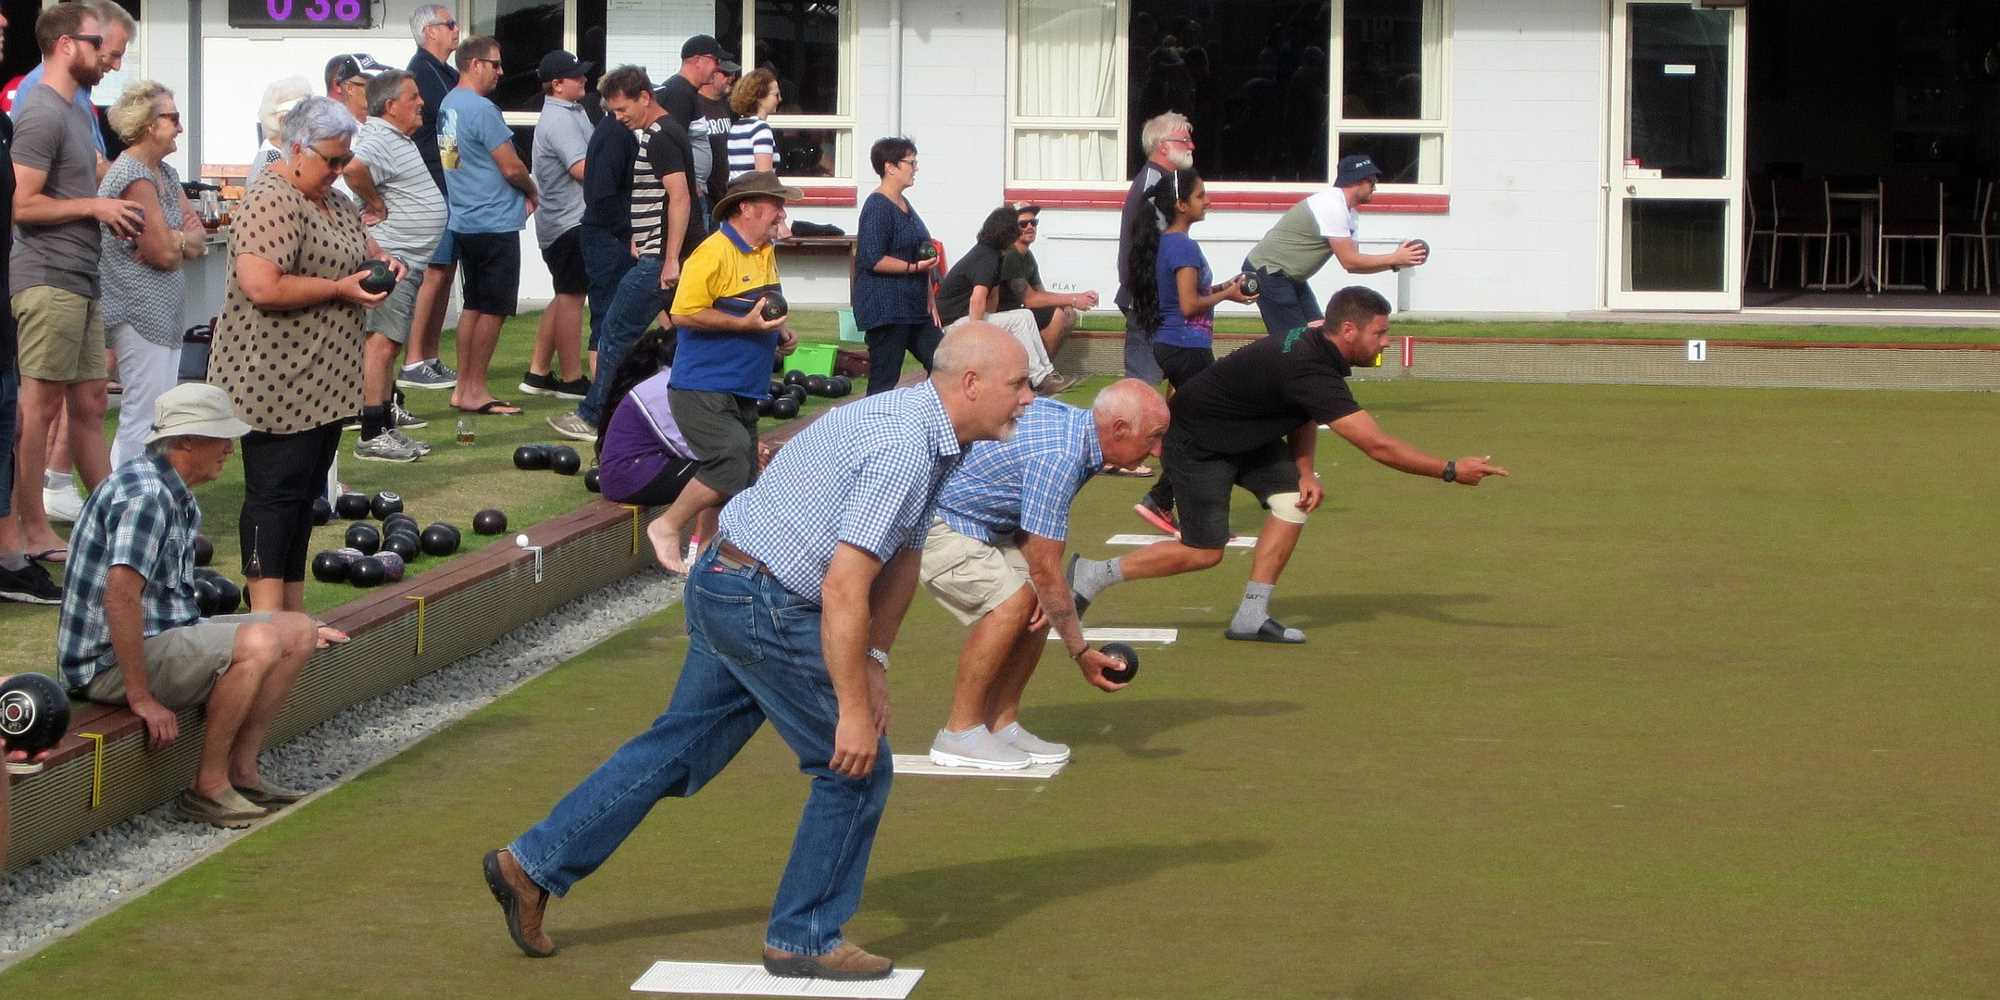 Community Bowls - The First Game is Underway - 21 Jan